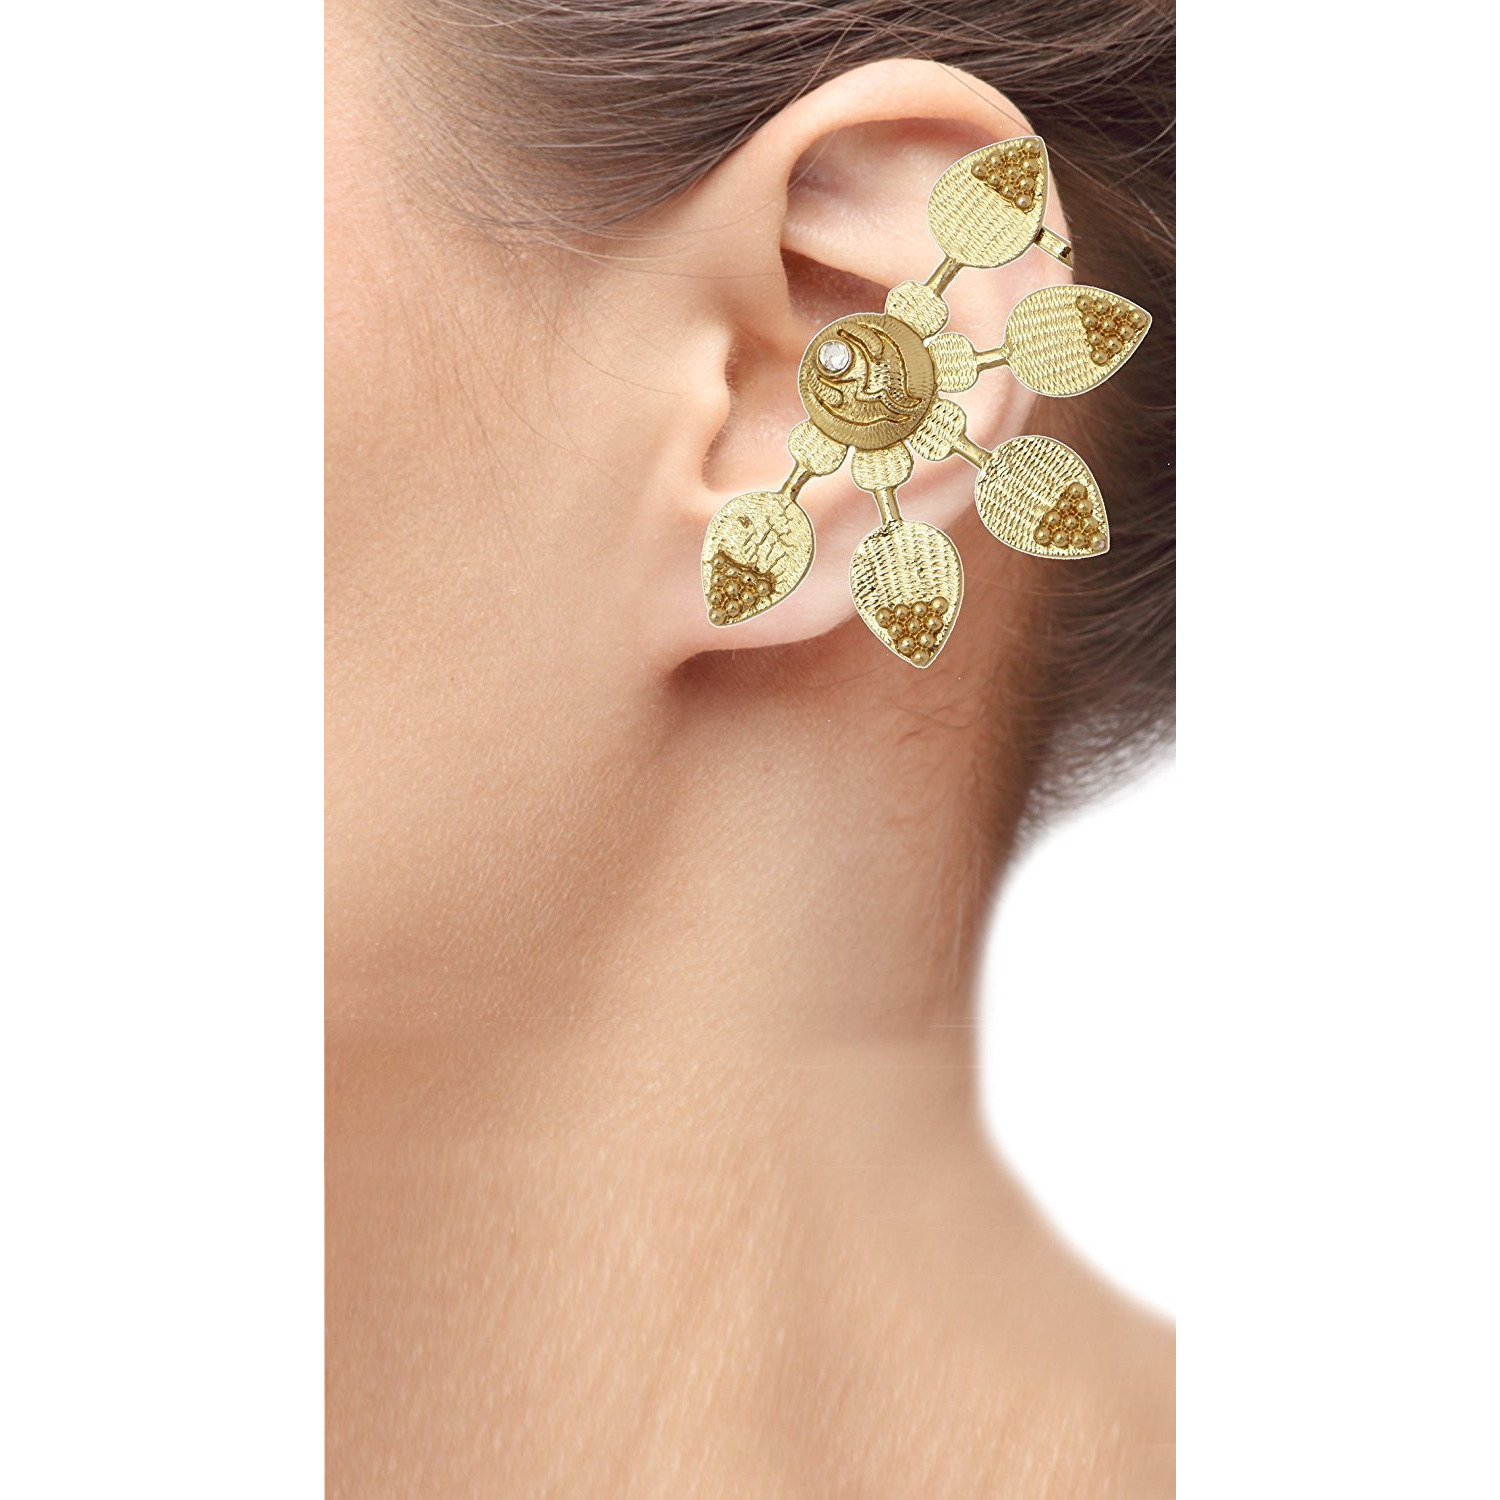 Zivom Antique 18K Gold Plated Large Sun Flower Ear Cuff Pair Earring For Women